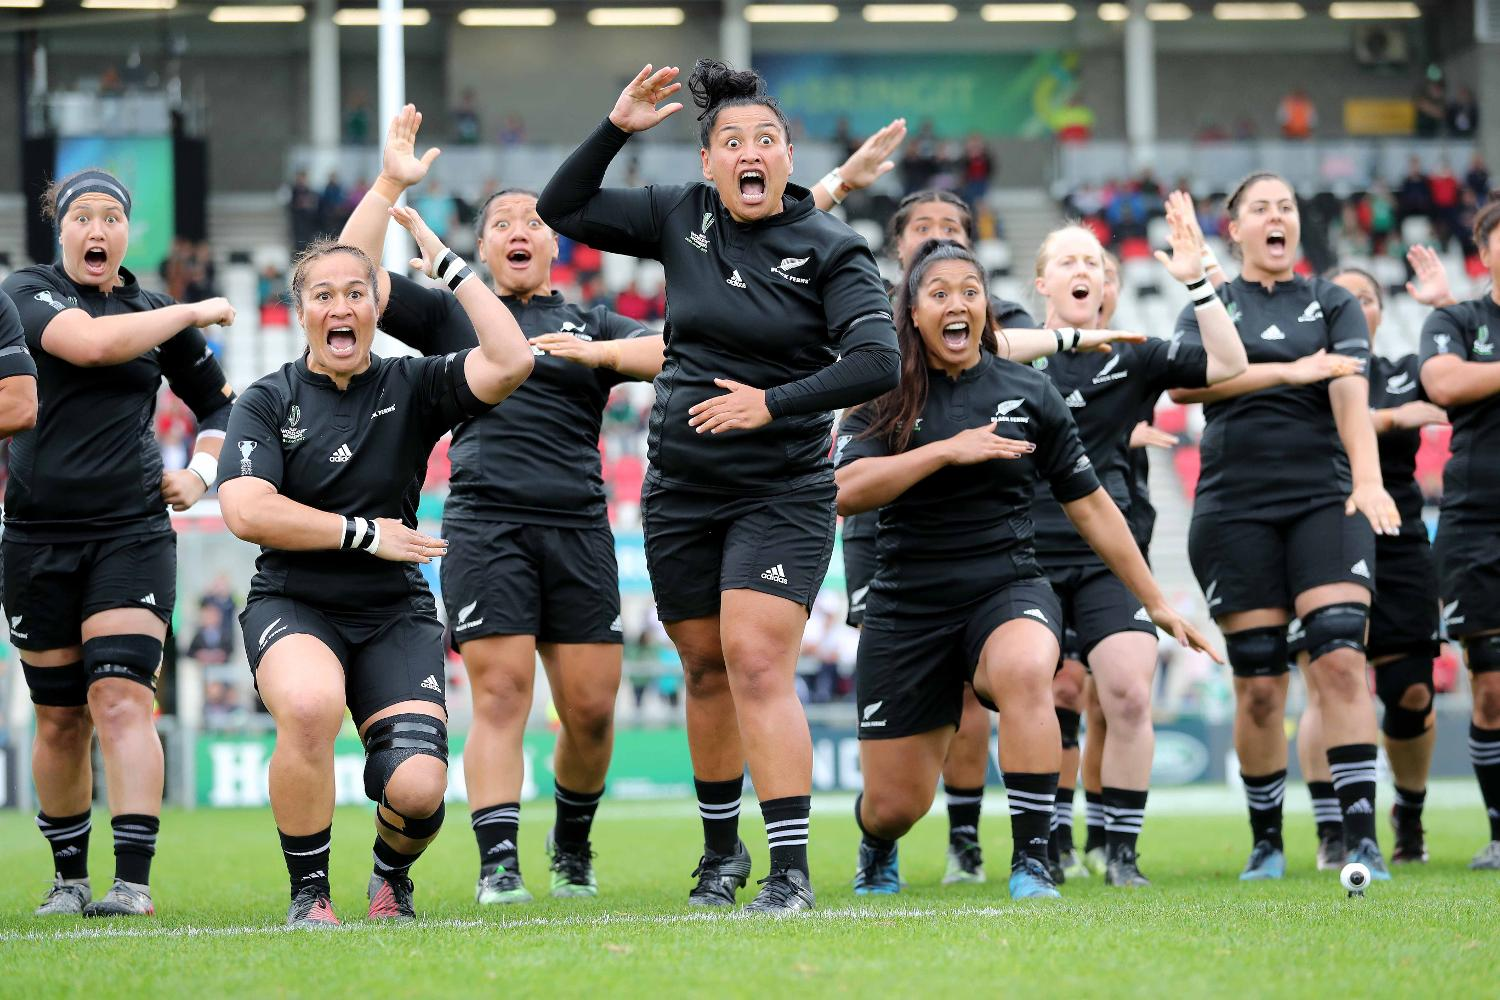 WRWC 2017: The New Zealand team perform the Haka